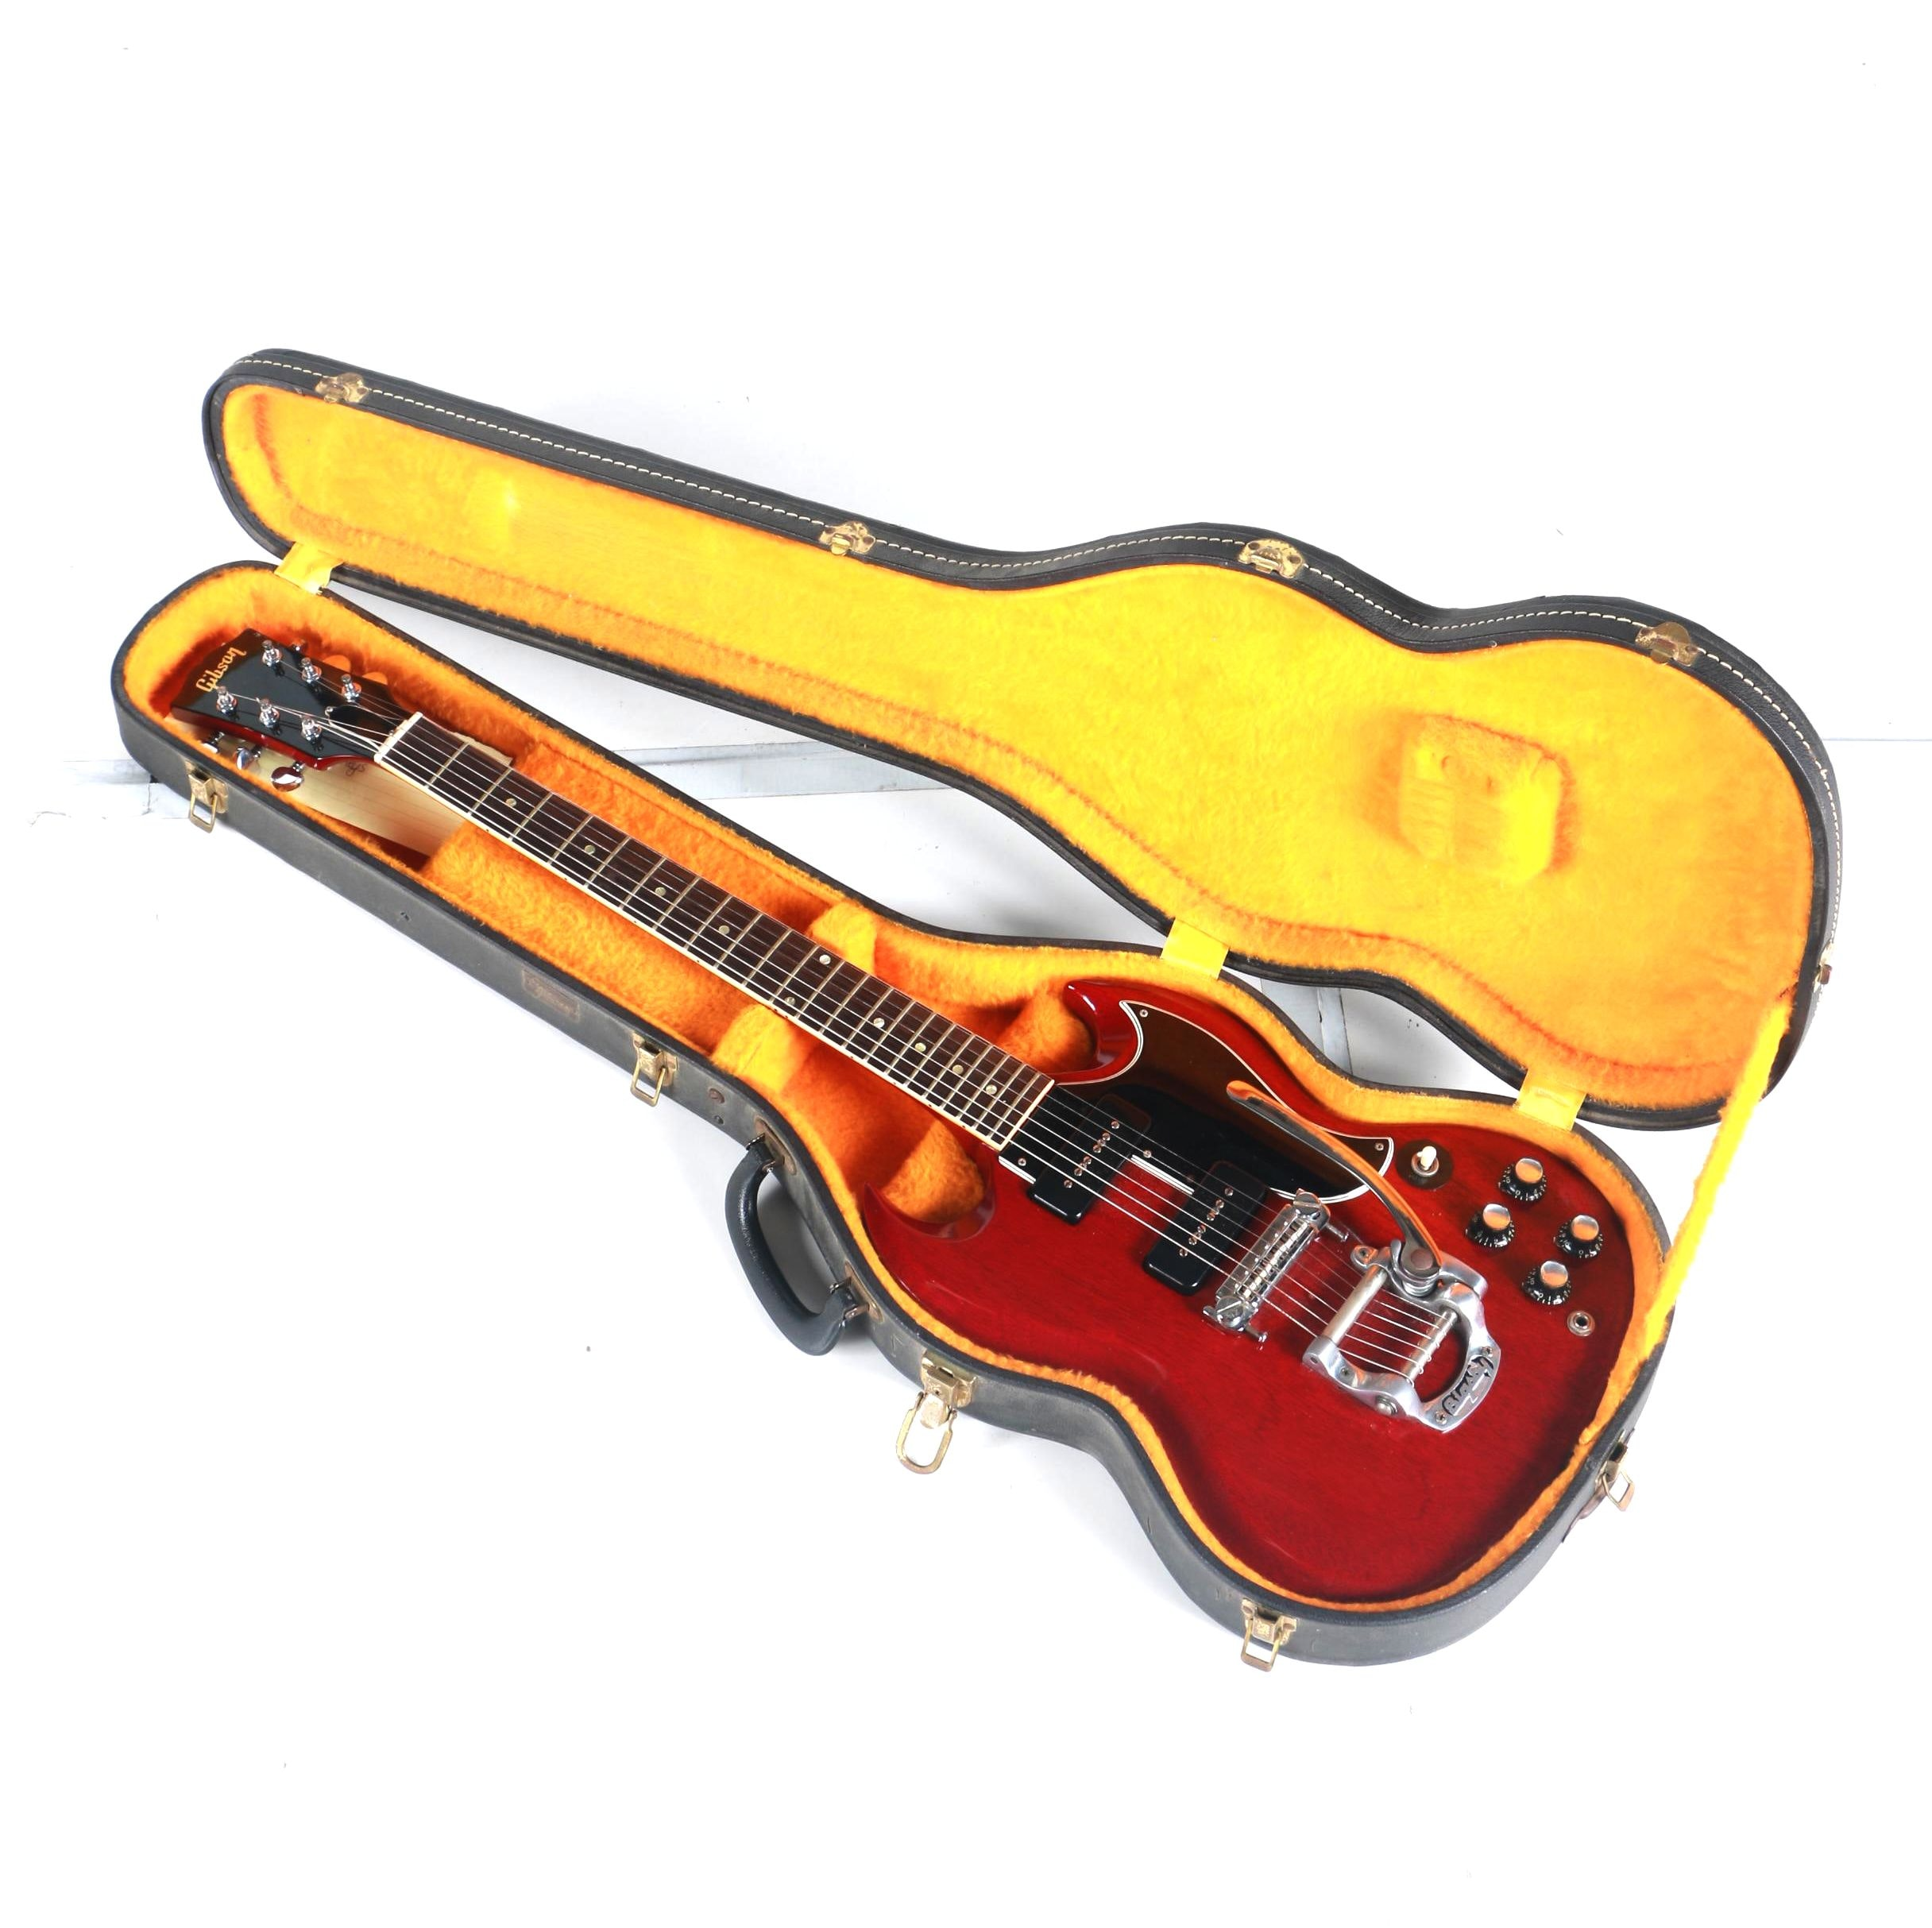 1965 Gibson SG Special and Case